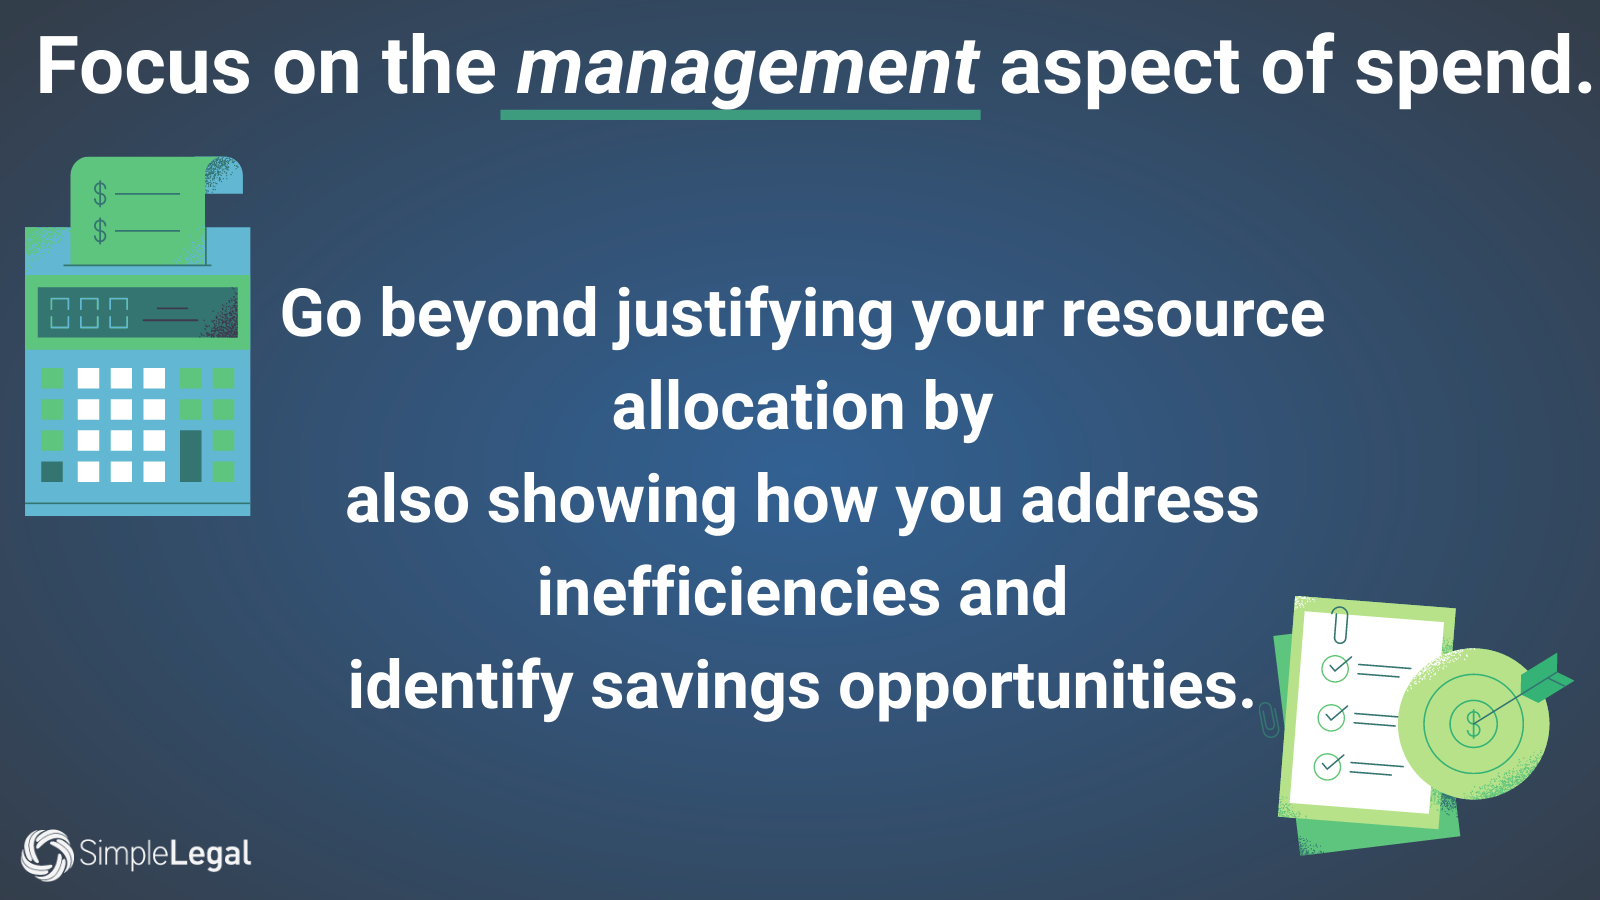 Focus On The Management Aspect Of Spend. Be Prepared To Justify Your Resource Allocation And Show How You Address Inefficiencies And Identify Savings Opportunities. (1)